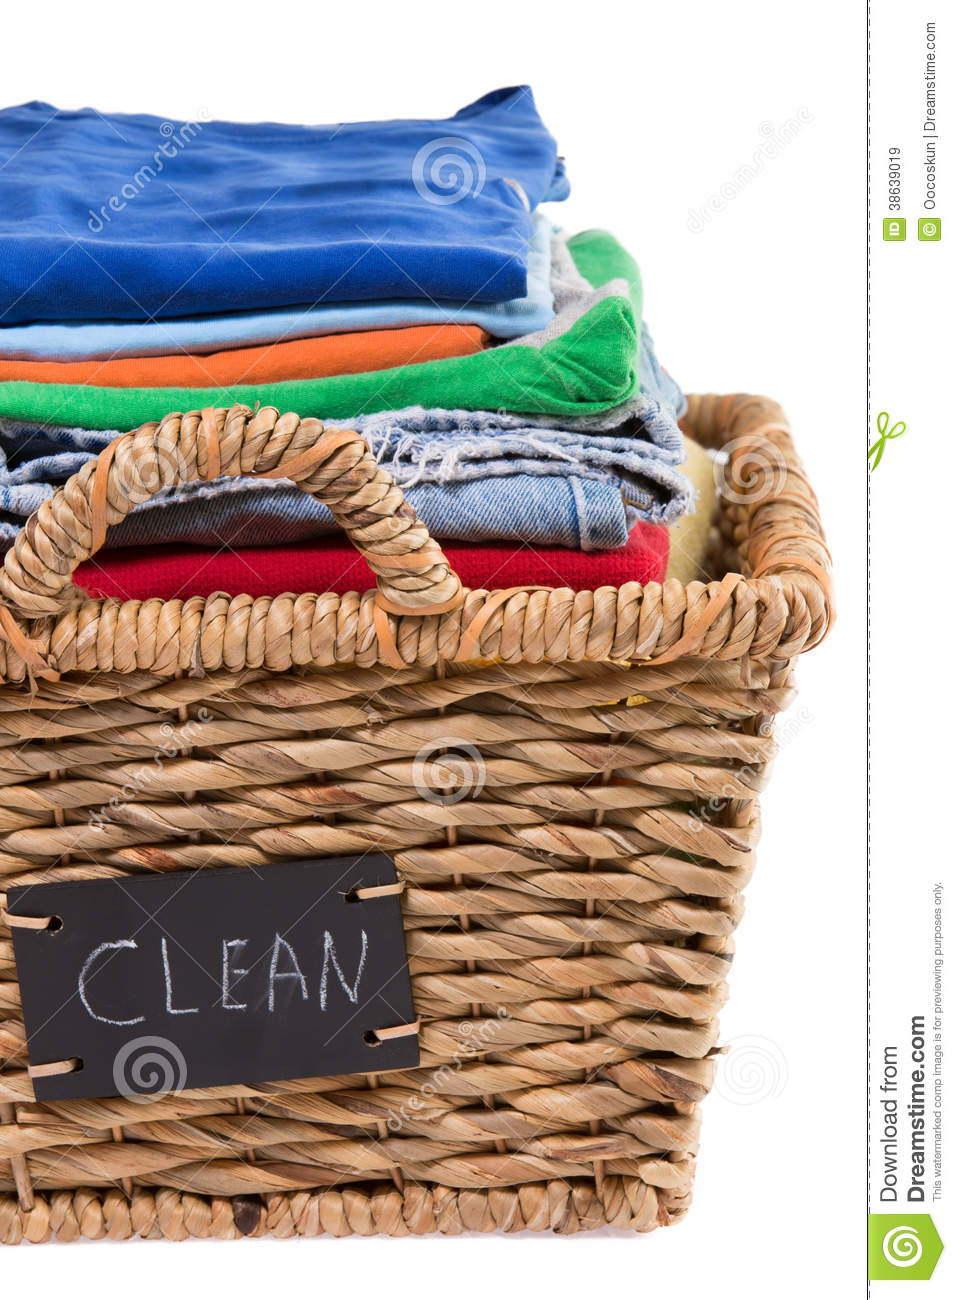 washed fresh clean clothes in a laundry basket royalty Laundry Basket Clip Art Black and White Cartoon Laundry Basket